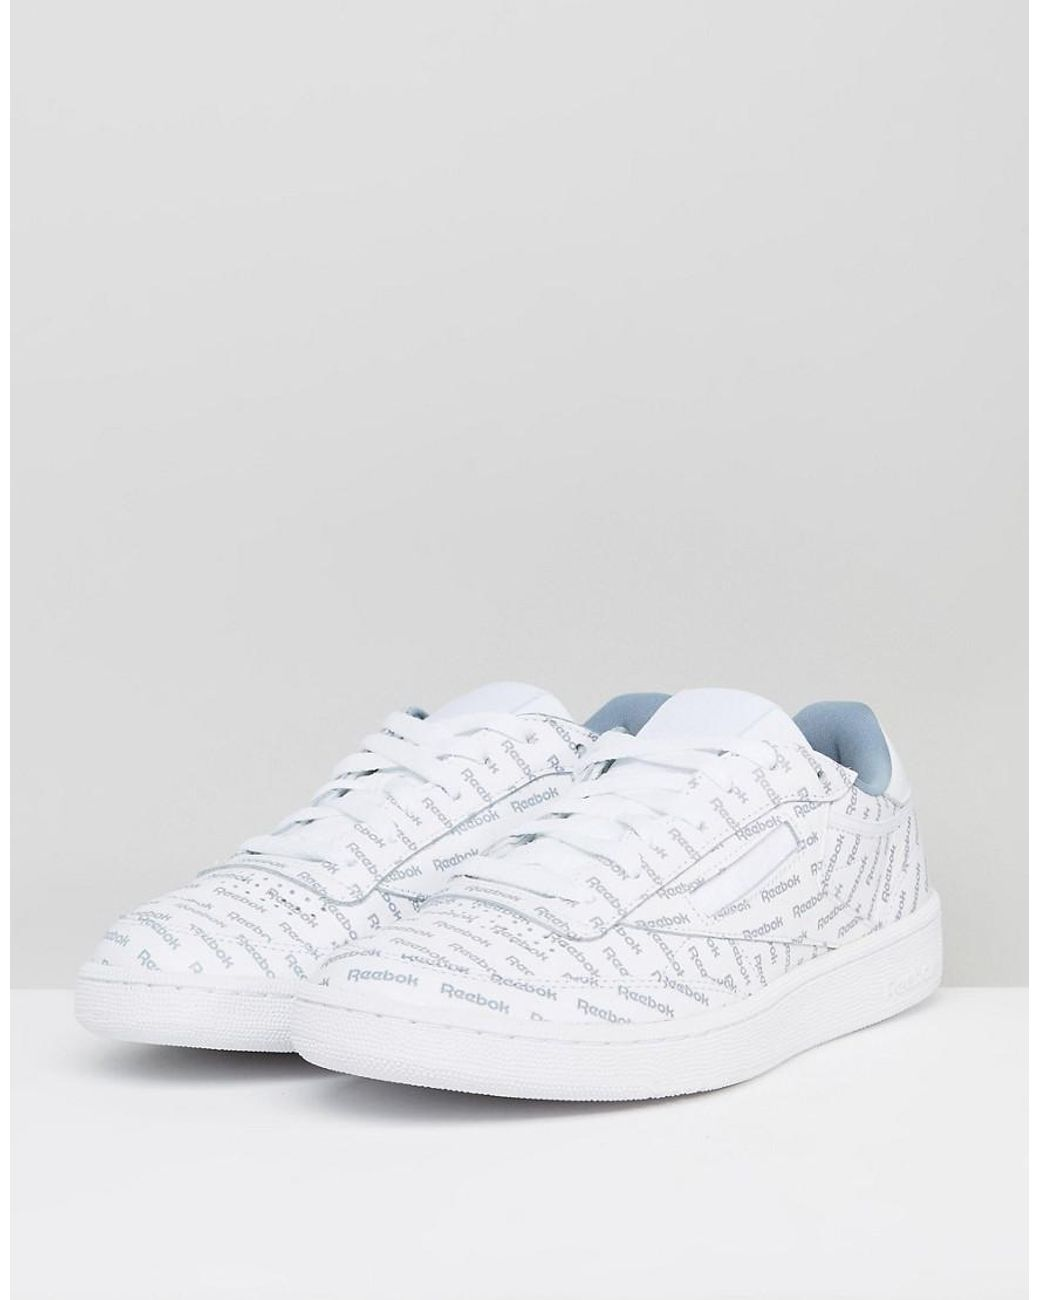 36e56f82d3c Reebok Club C 85 So Trainers In White Bs5215 in White for Men - Lyst